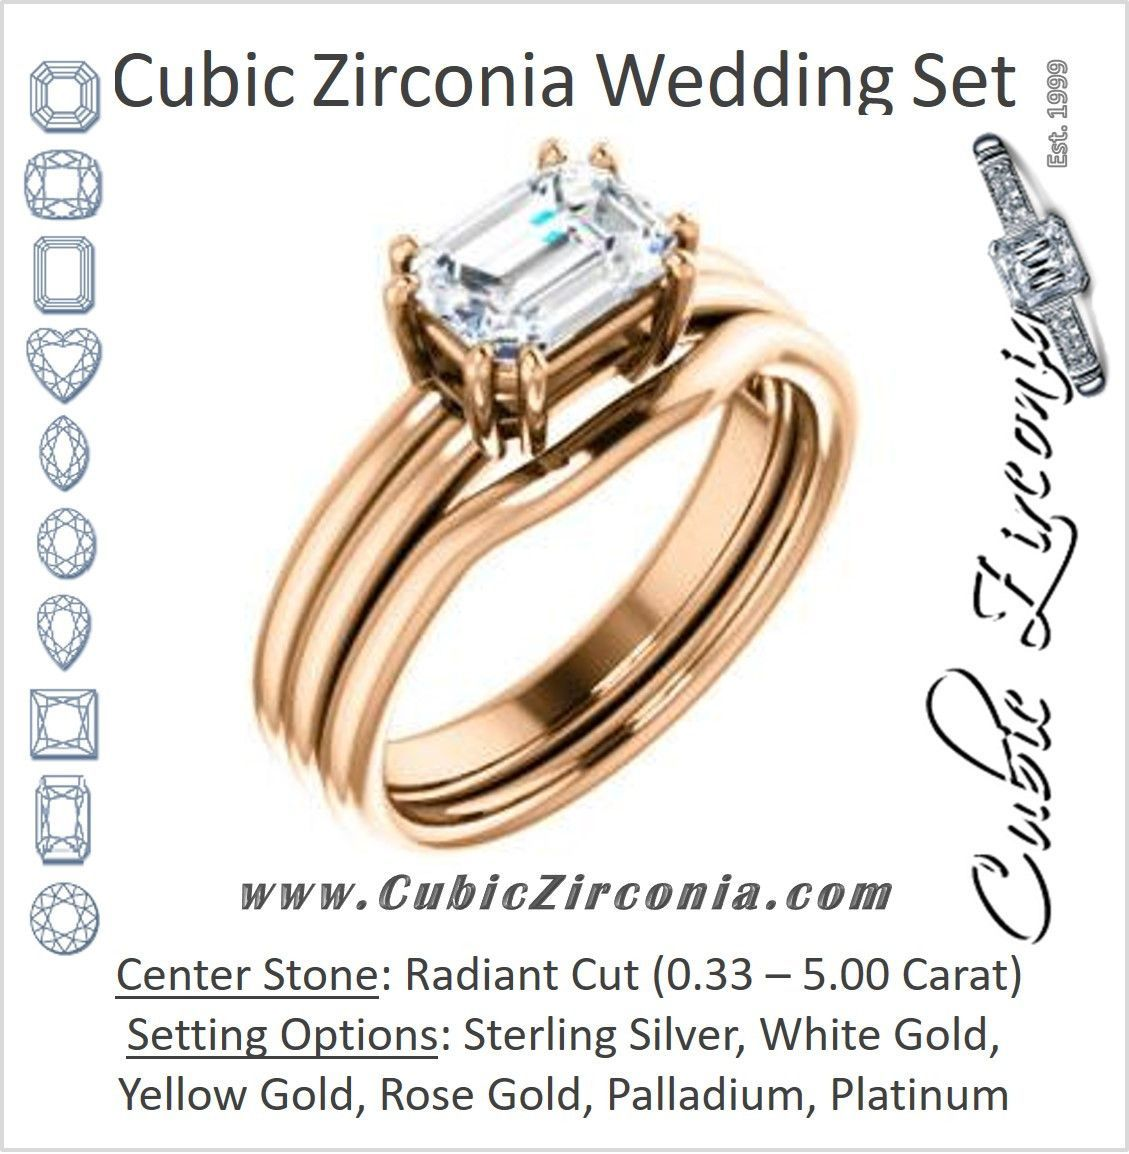 CZ Wedding Set, featuring The Marnie engagement ring (Customizable Radiant Cut Solitaire with Grooved Band)